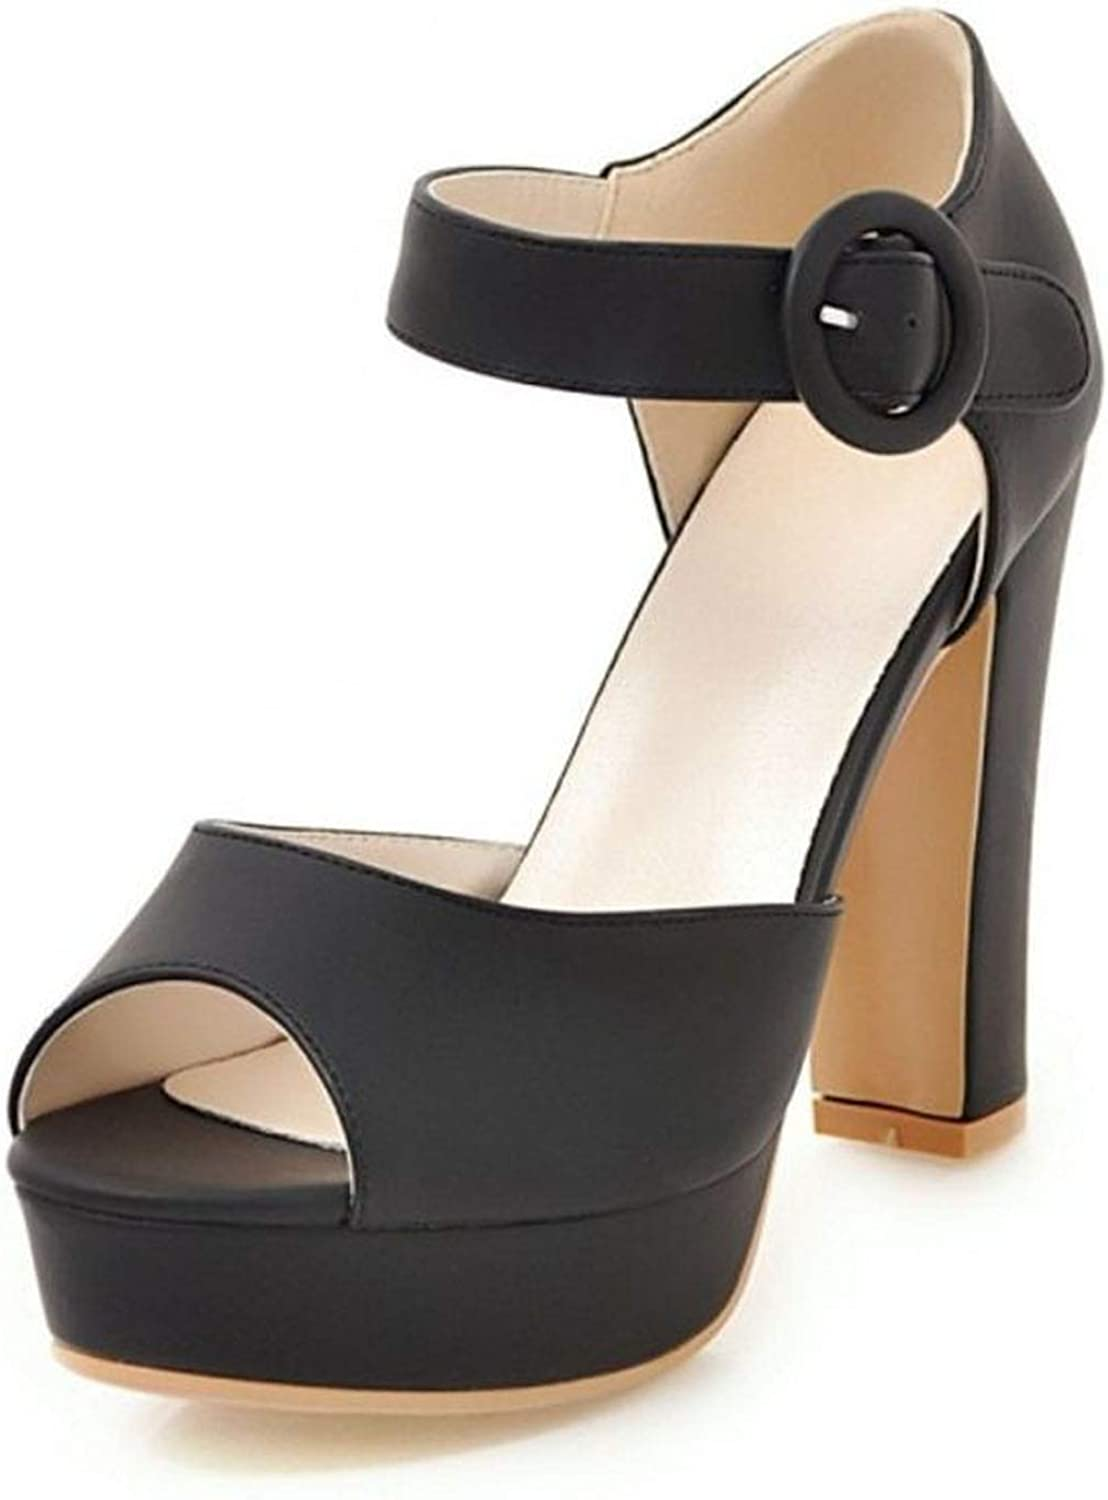 Sandals Platform Fashion High Heels Summer shoes Concise Open Toe Office Lady Daily Footwear